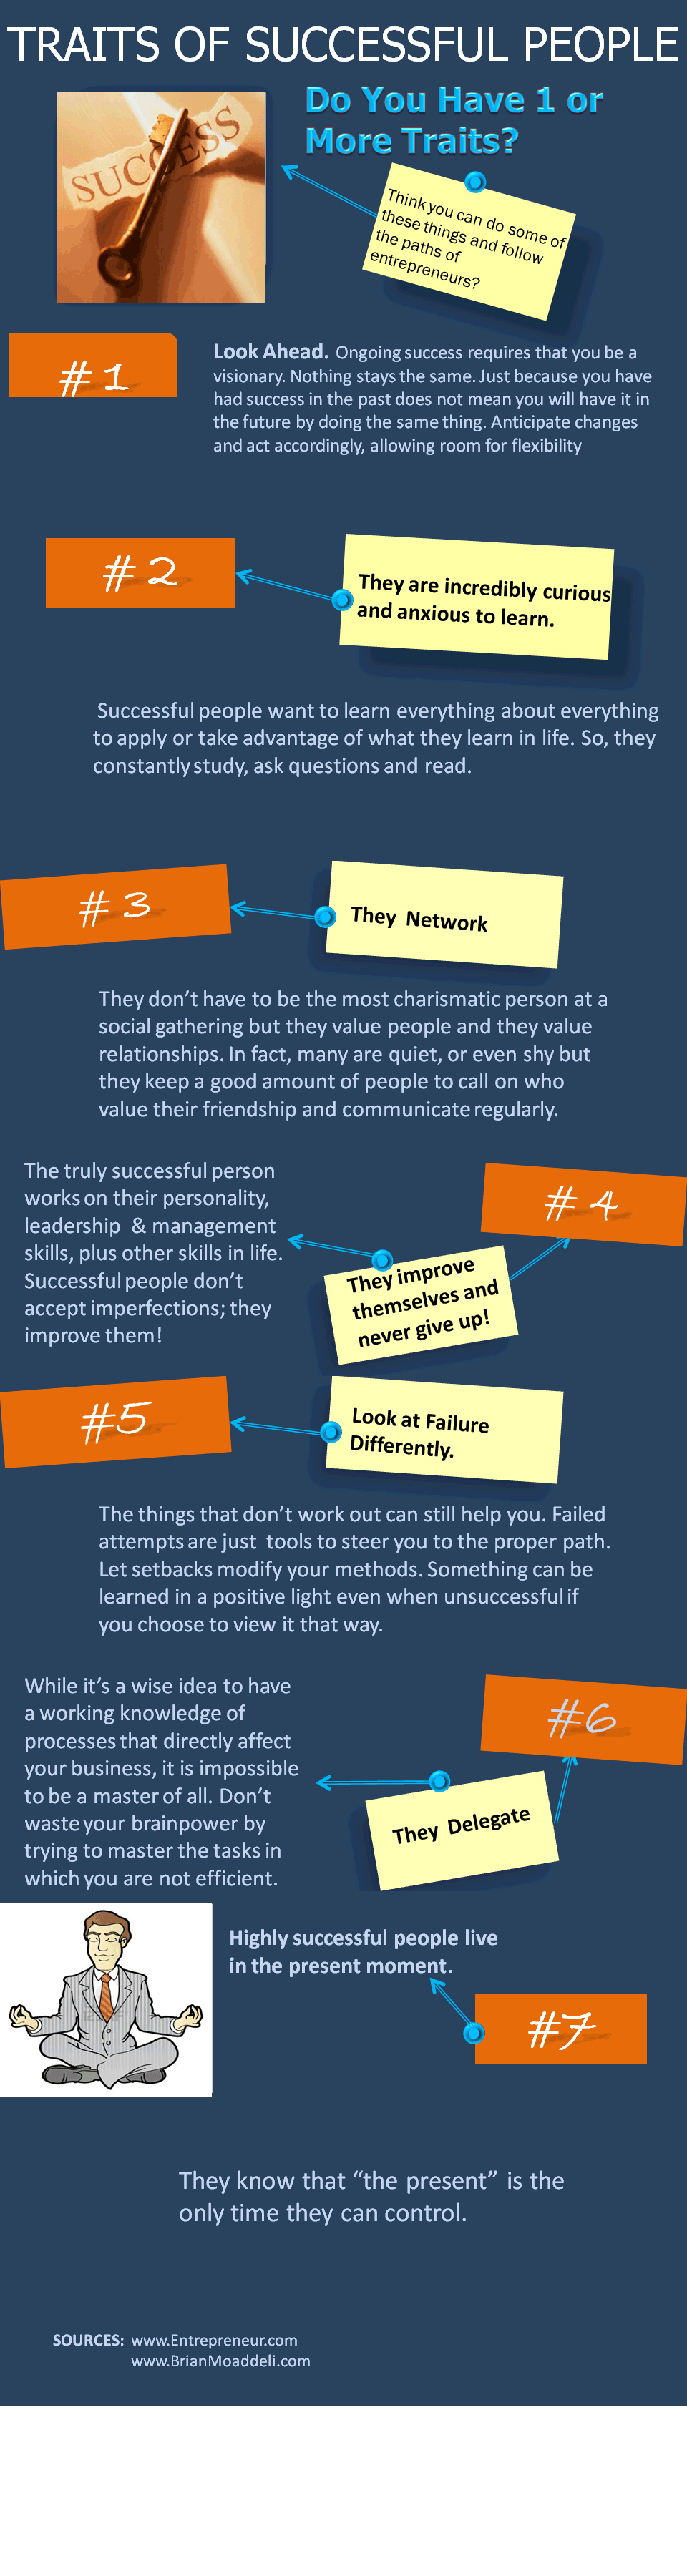 Traits of Successful People